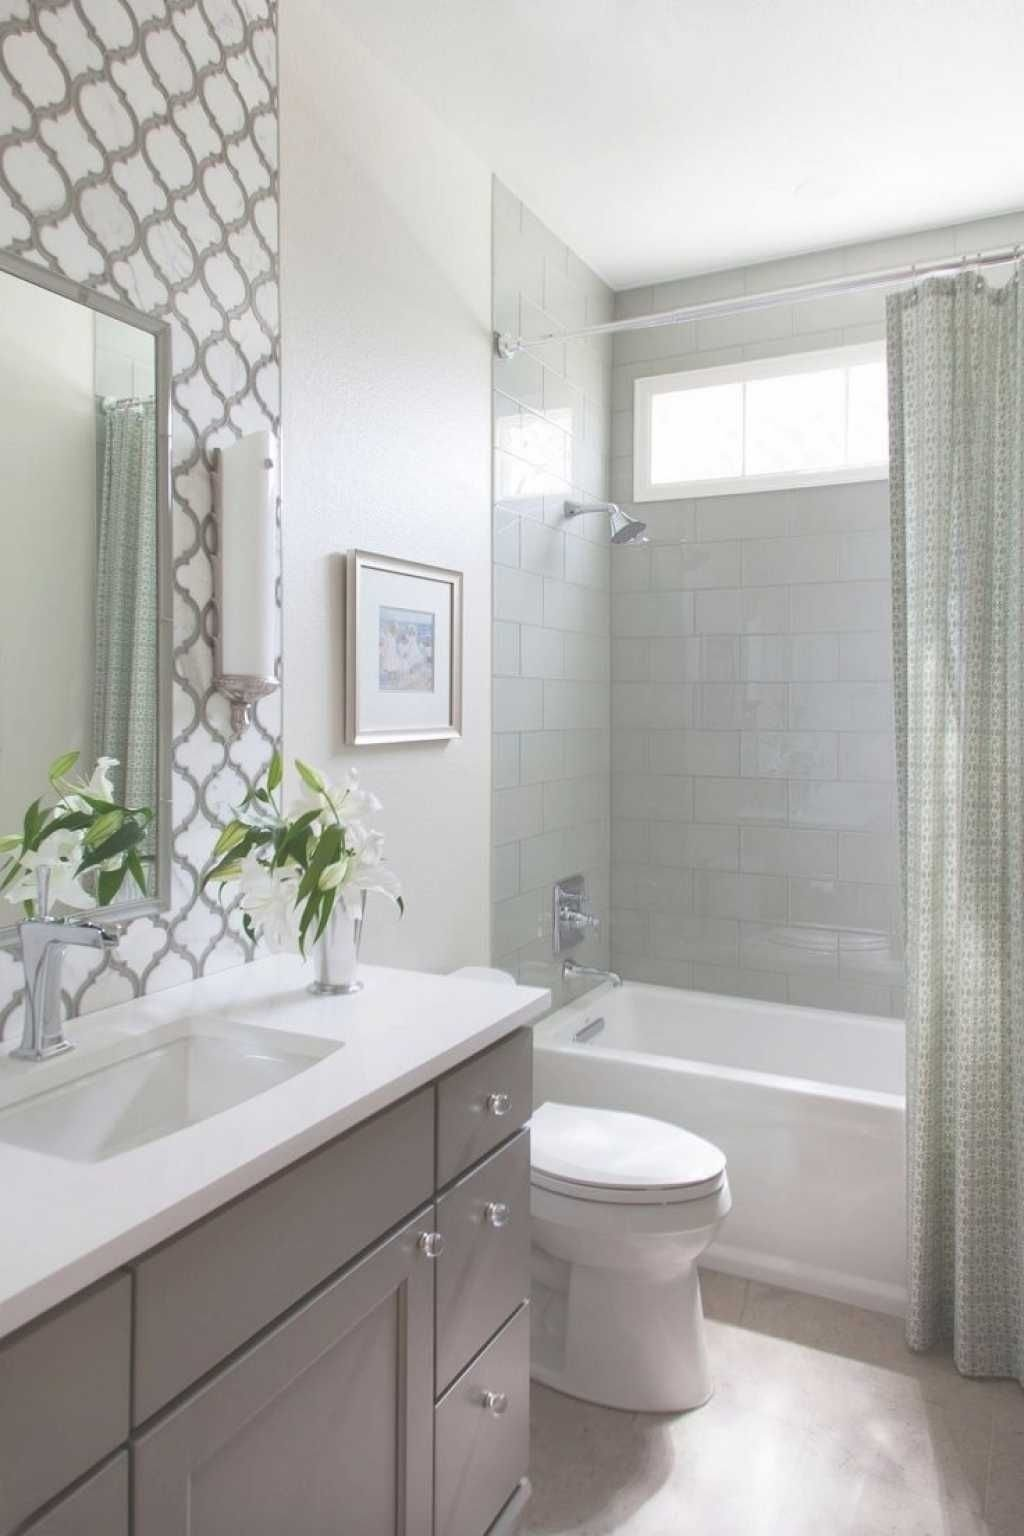 10 Fantastic Ideas For Remodeling A Small Bathroom pinarchitecture design magz on bathroom design ideas pinterest 1